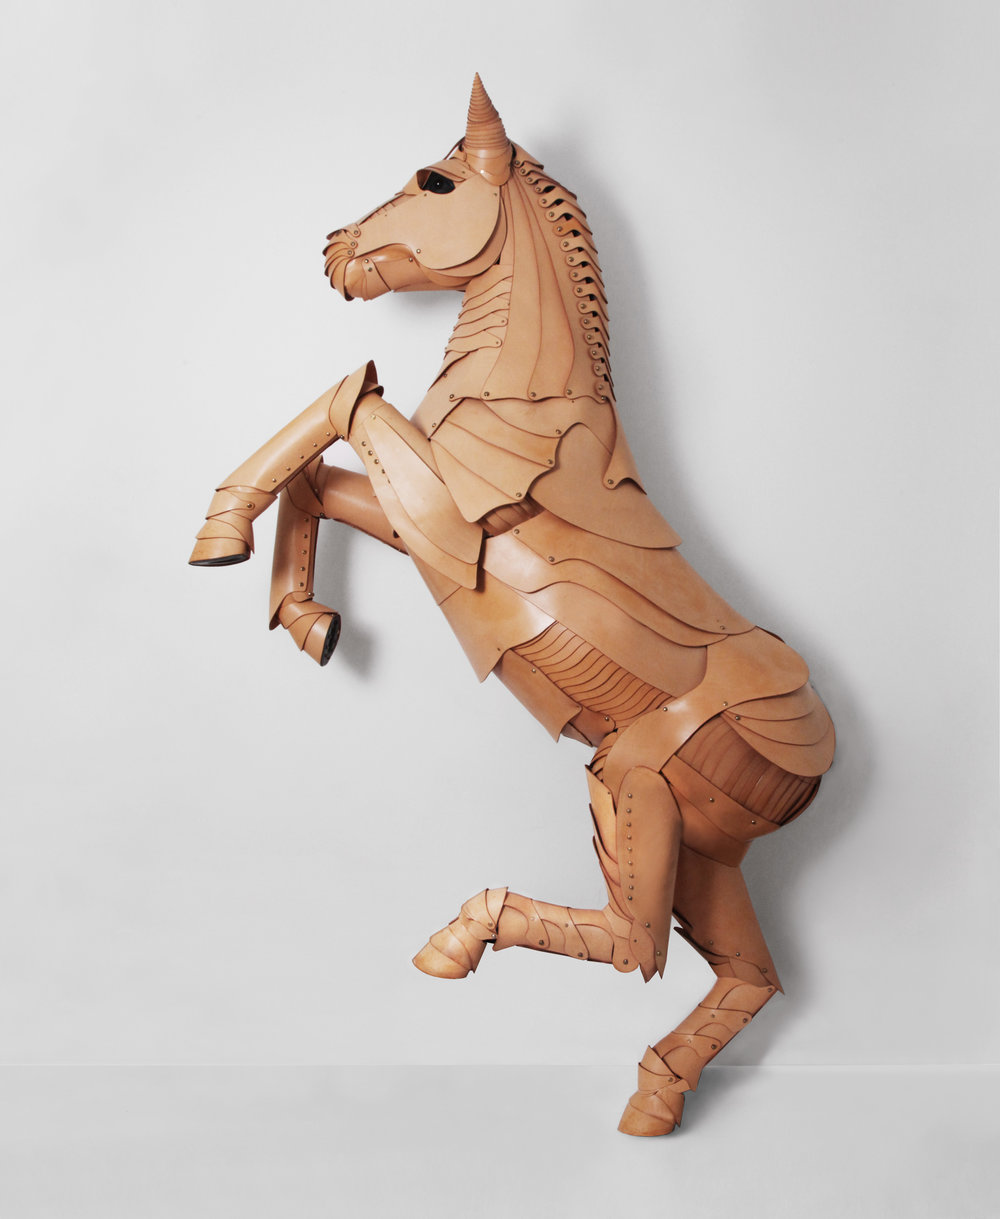 COLLABORATION / FLEET ILYA X DOVER STREET MARKET LONDON - LIFE SIZE HORSE SCULPTURE